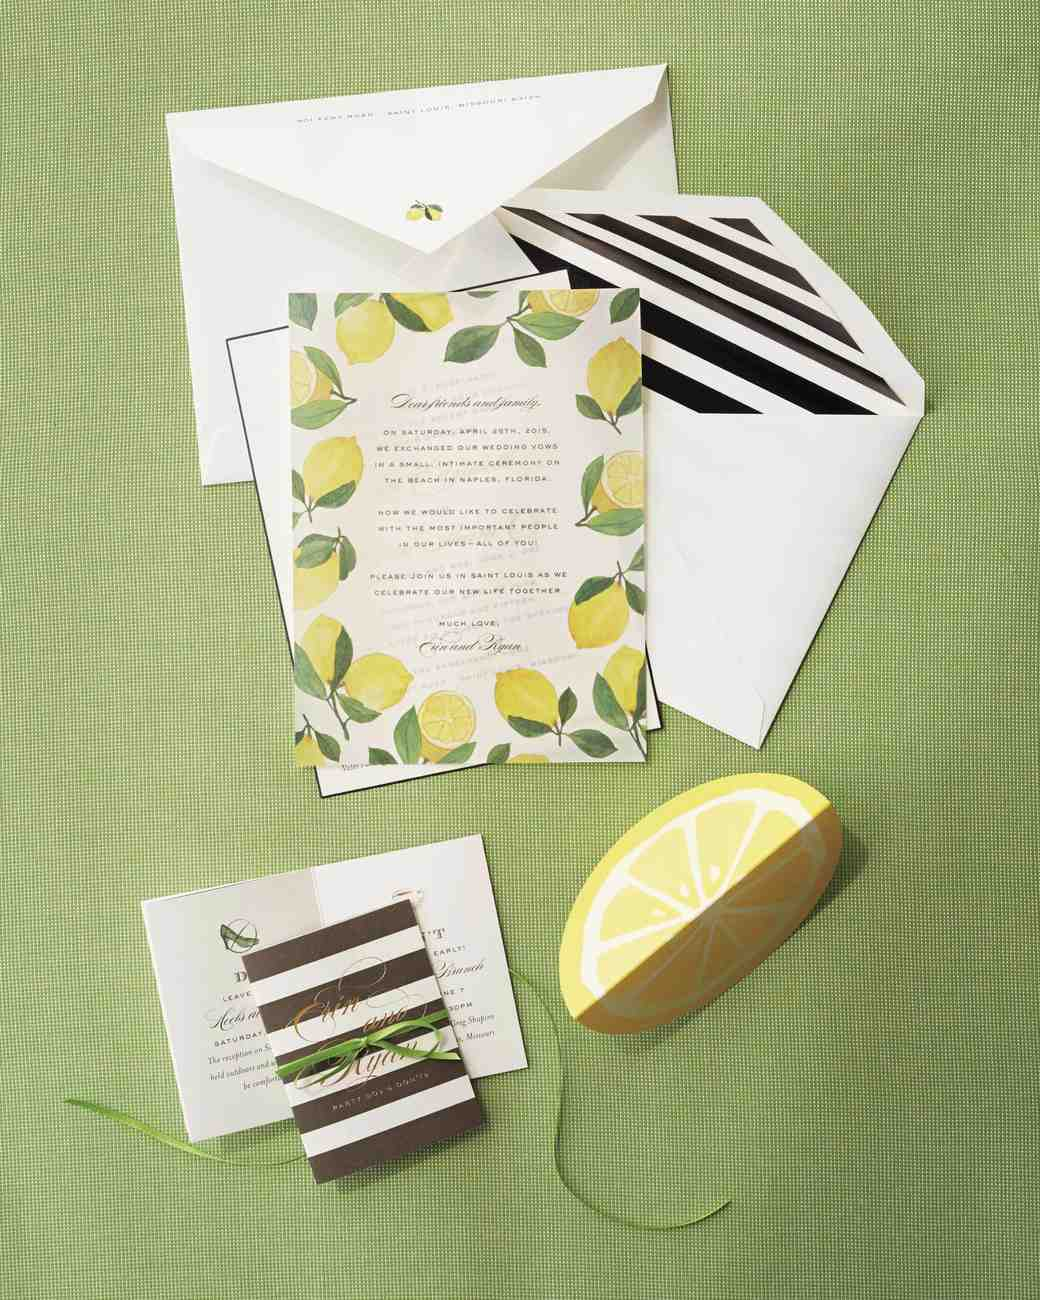 merin-ryan-real-wedding-lemon-theme-invitations.jpg